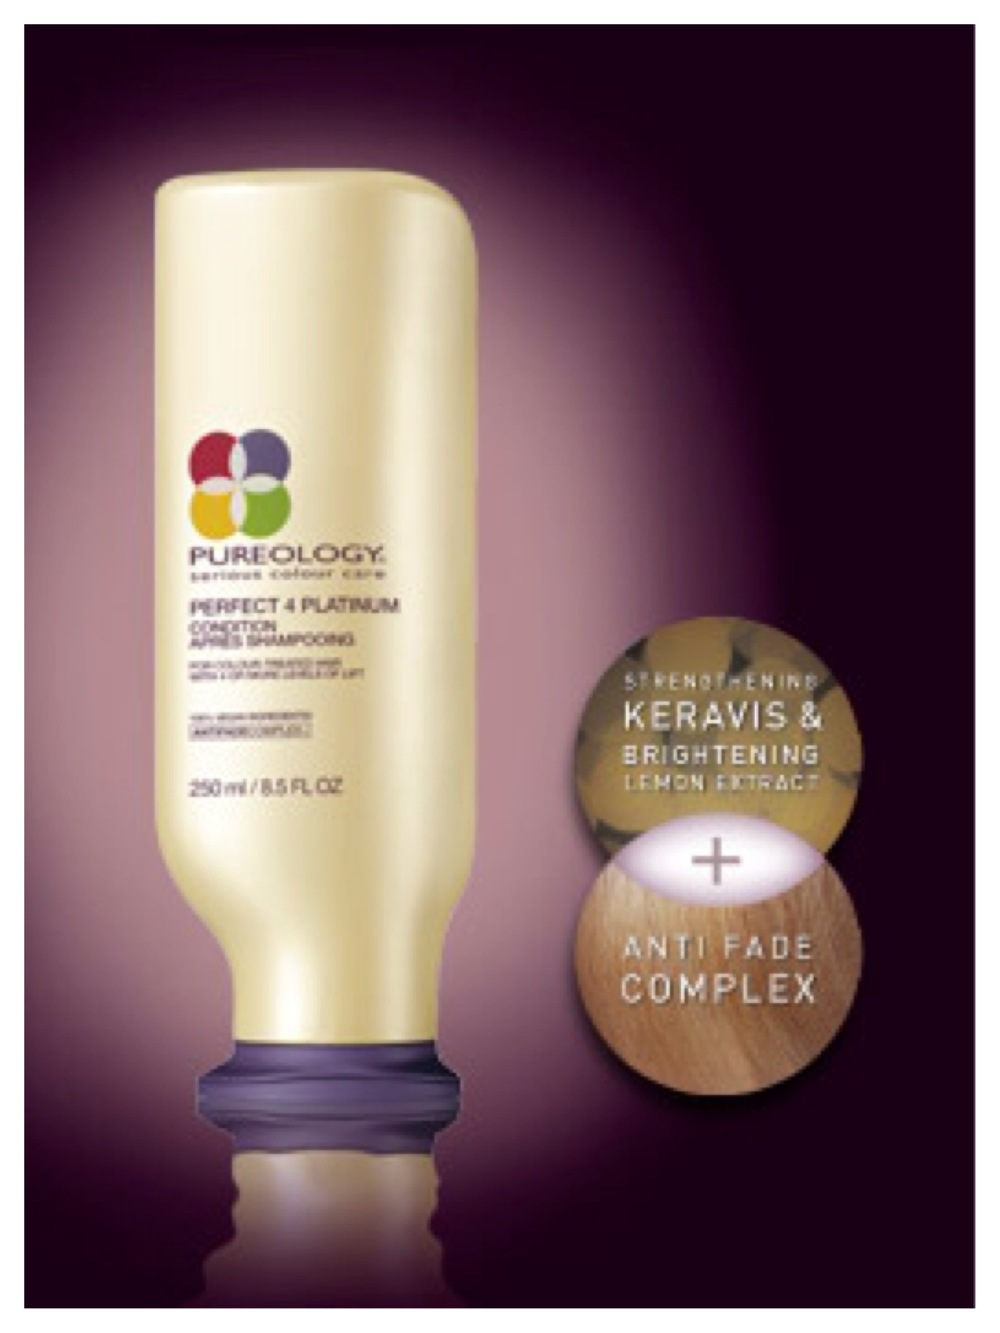 Pureology Perfect 4 Platinum Condition keeps my platinum locks it top shape.